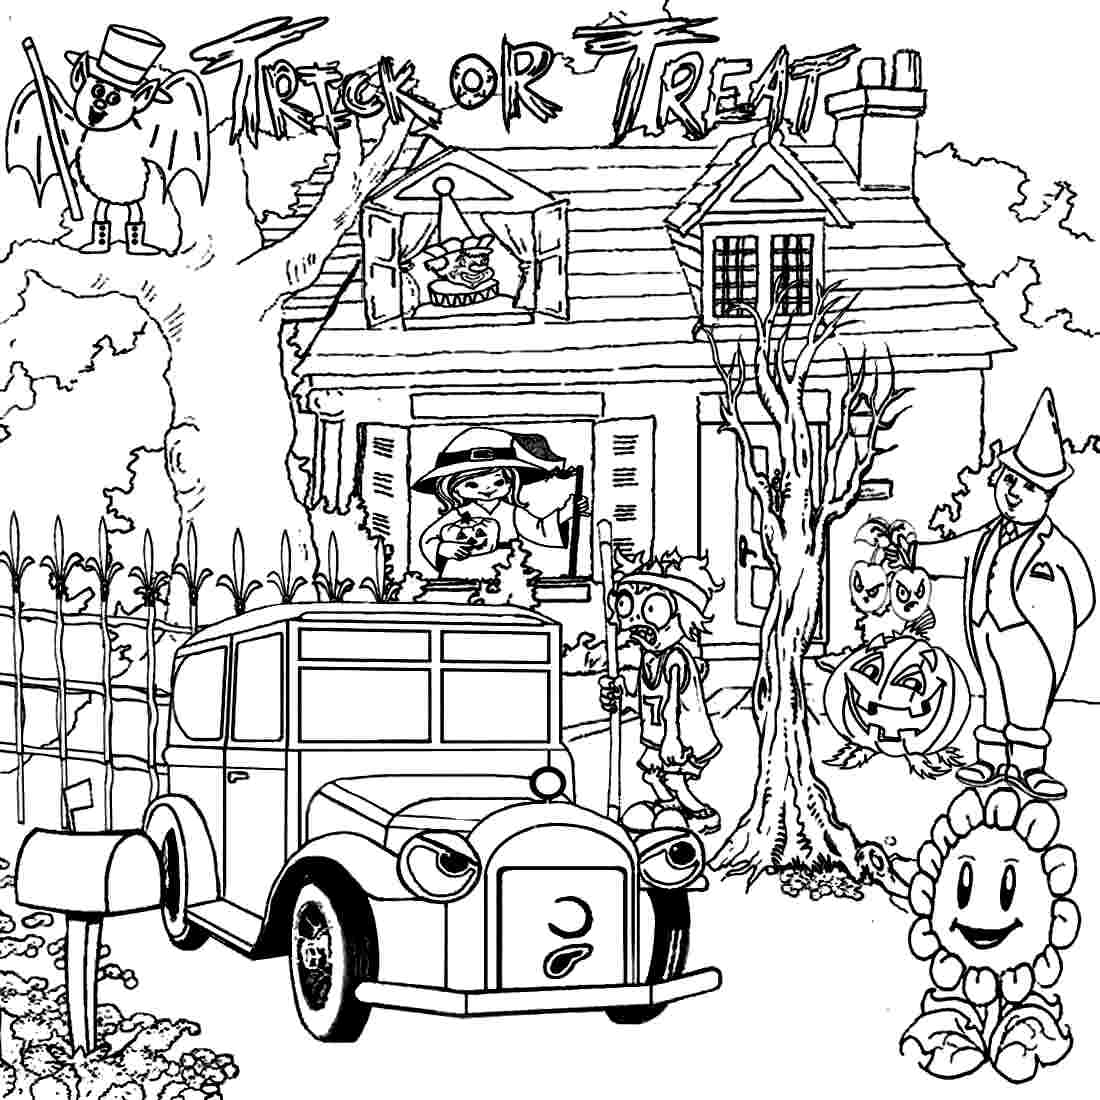 free printable halloween coloring pages for older kids free halloween coloring pages for adults kids for kids halloween coloring free pages printable older